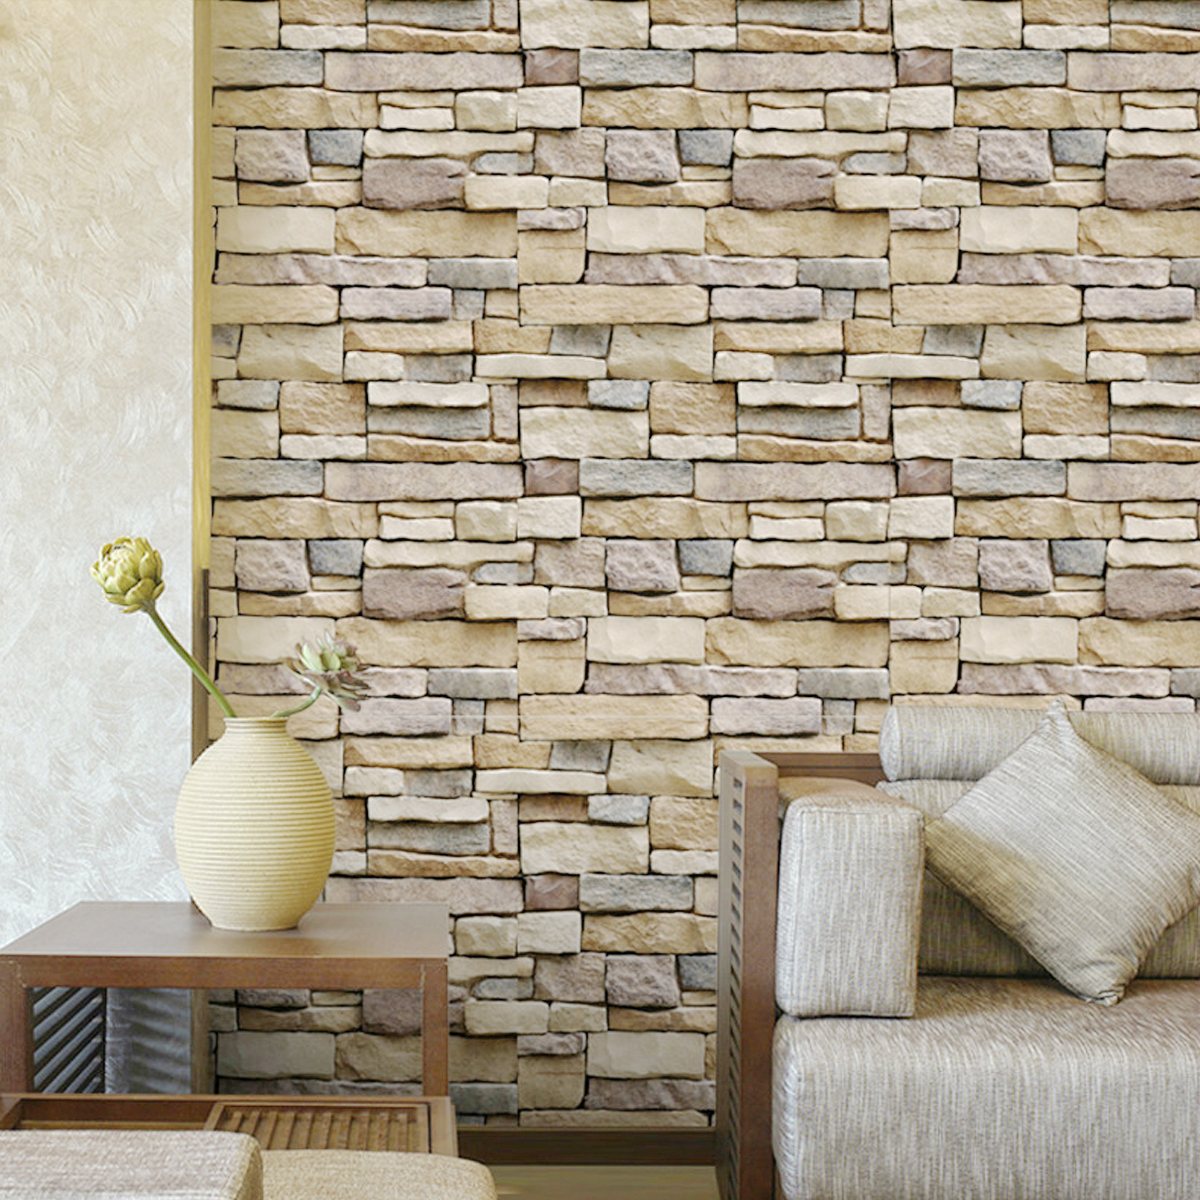 3D Wall Paper Brick Stone Pattern Sticker Rolls Self-adhesive Backdrop DIY Room Decor